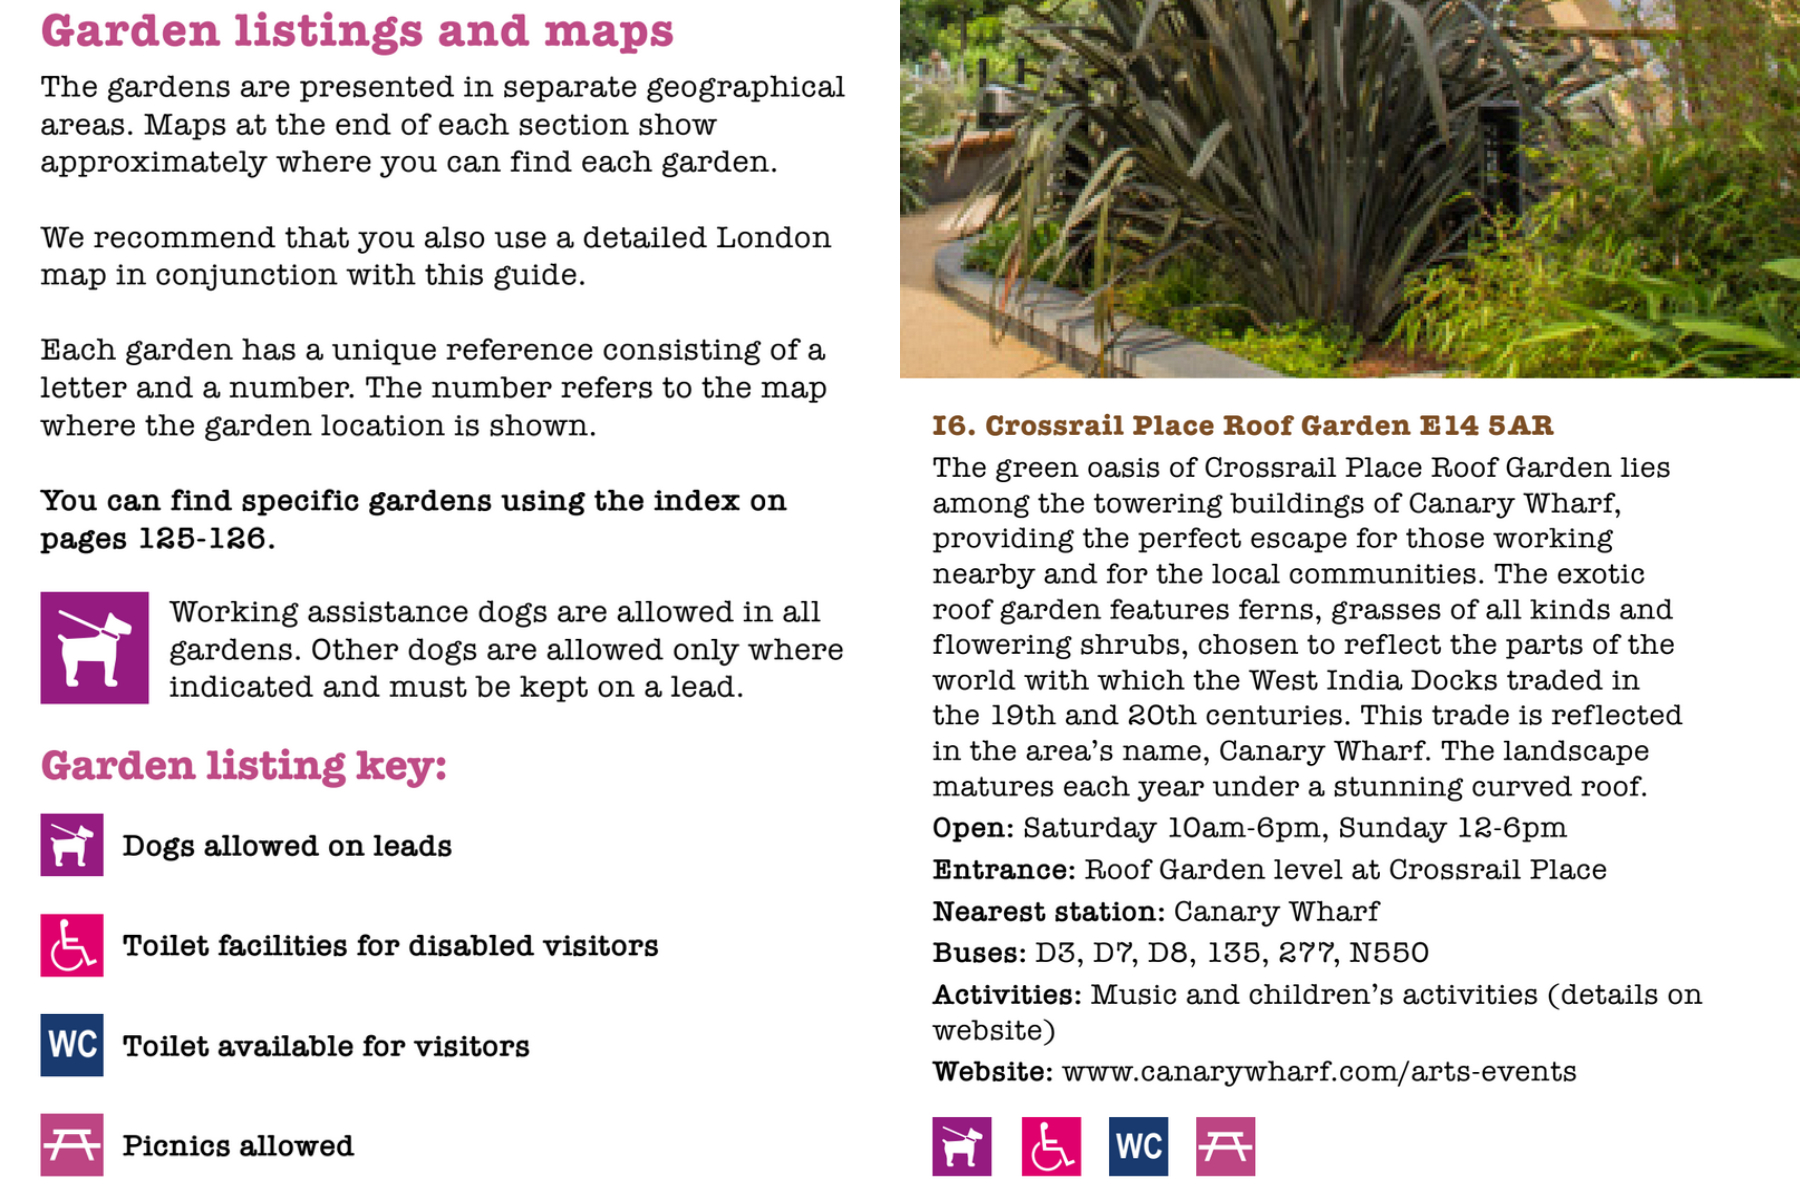 Open Garden Squares 2018 Visiting Dog Friendly Crossrail Place Roof Garden